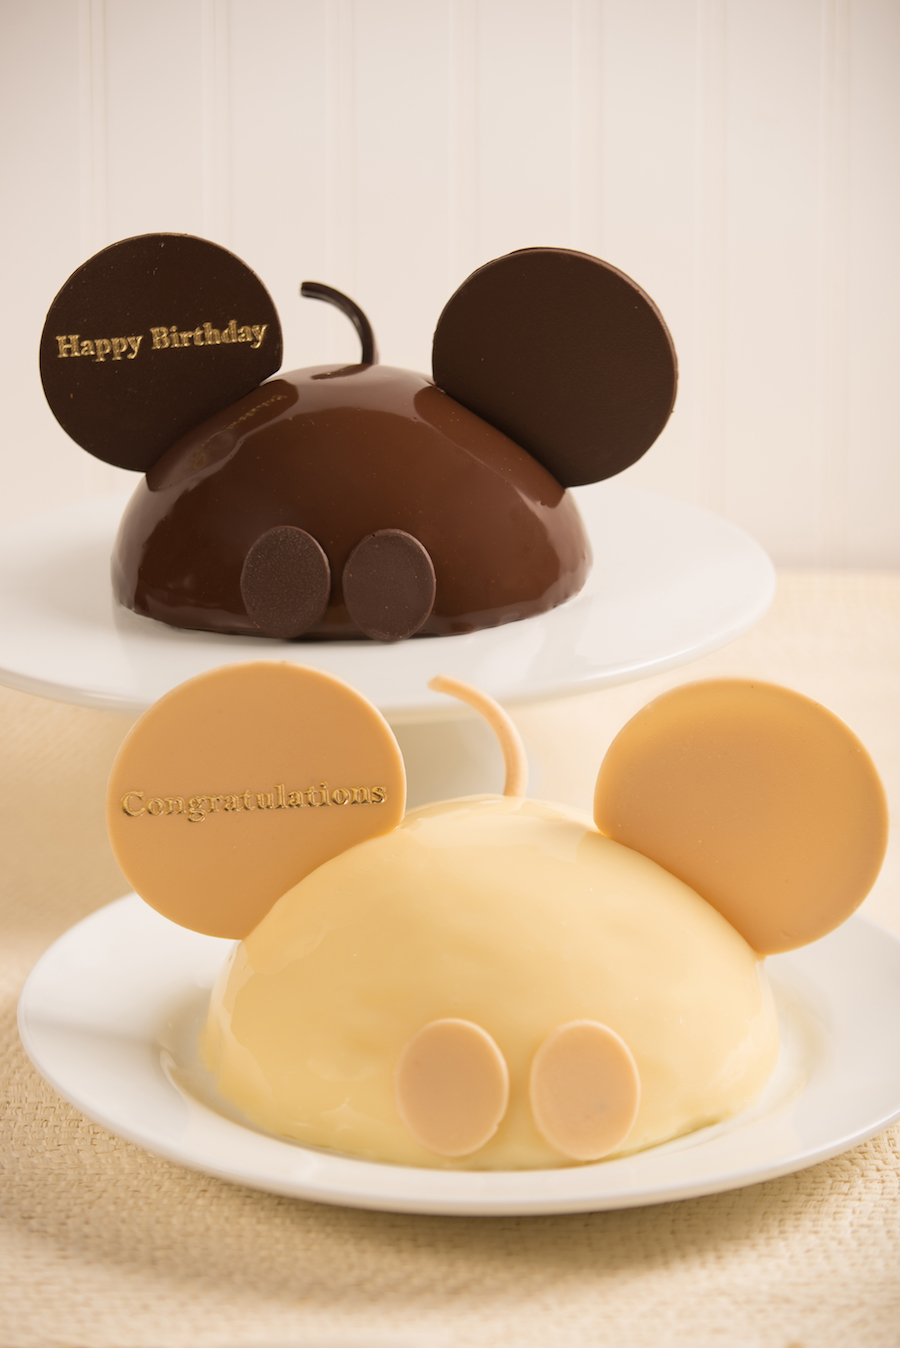 New Mickey Mouse Celebration Cakes Coming Soon to Walt Disney World